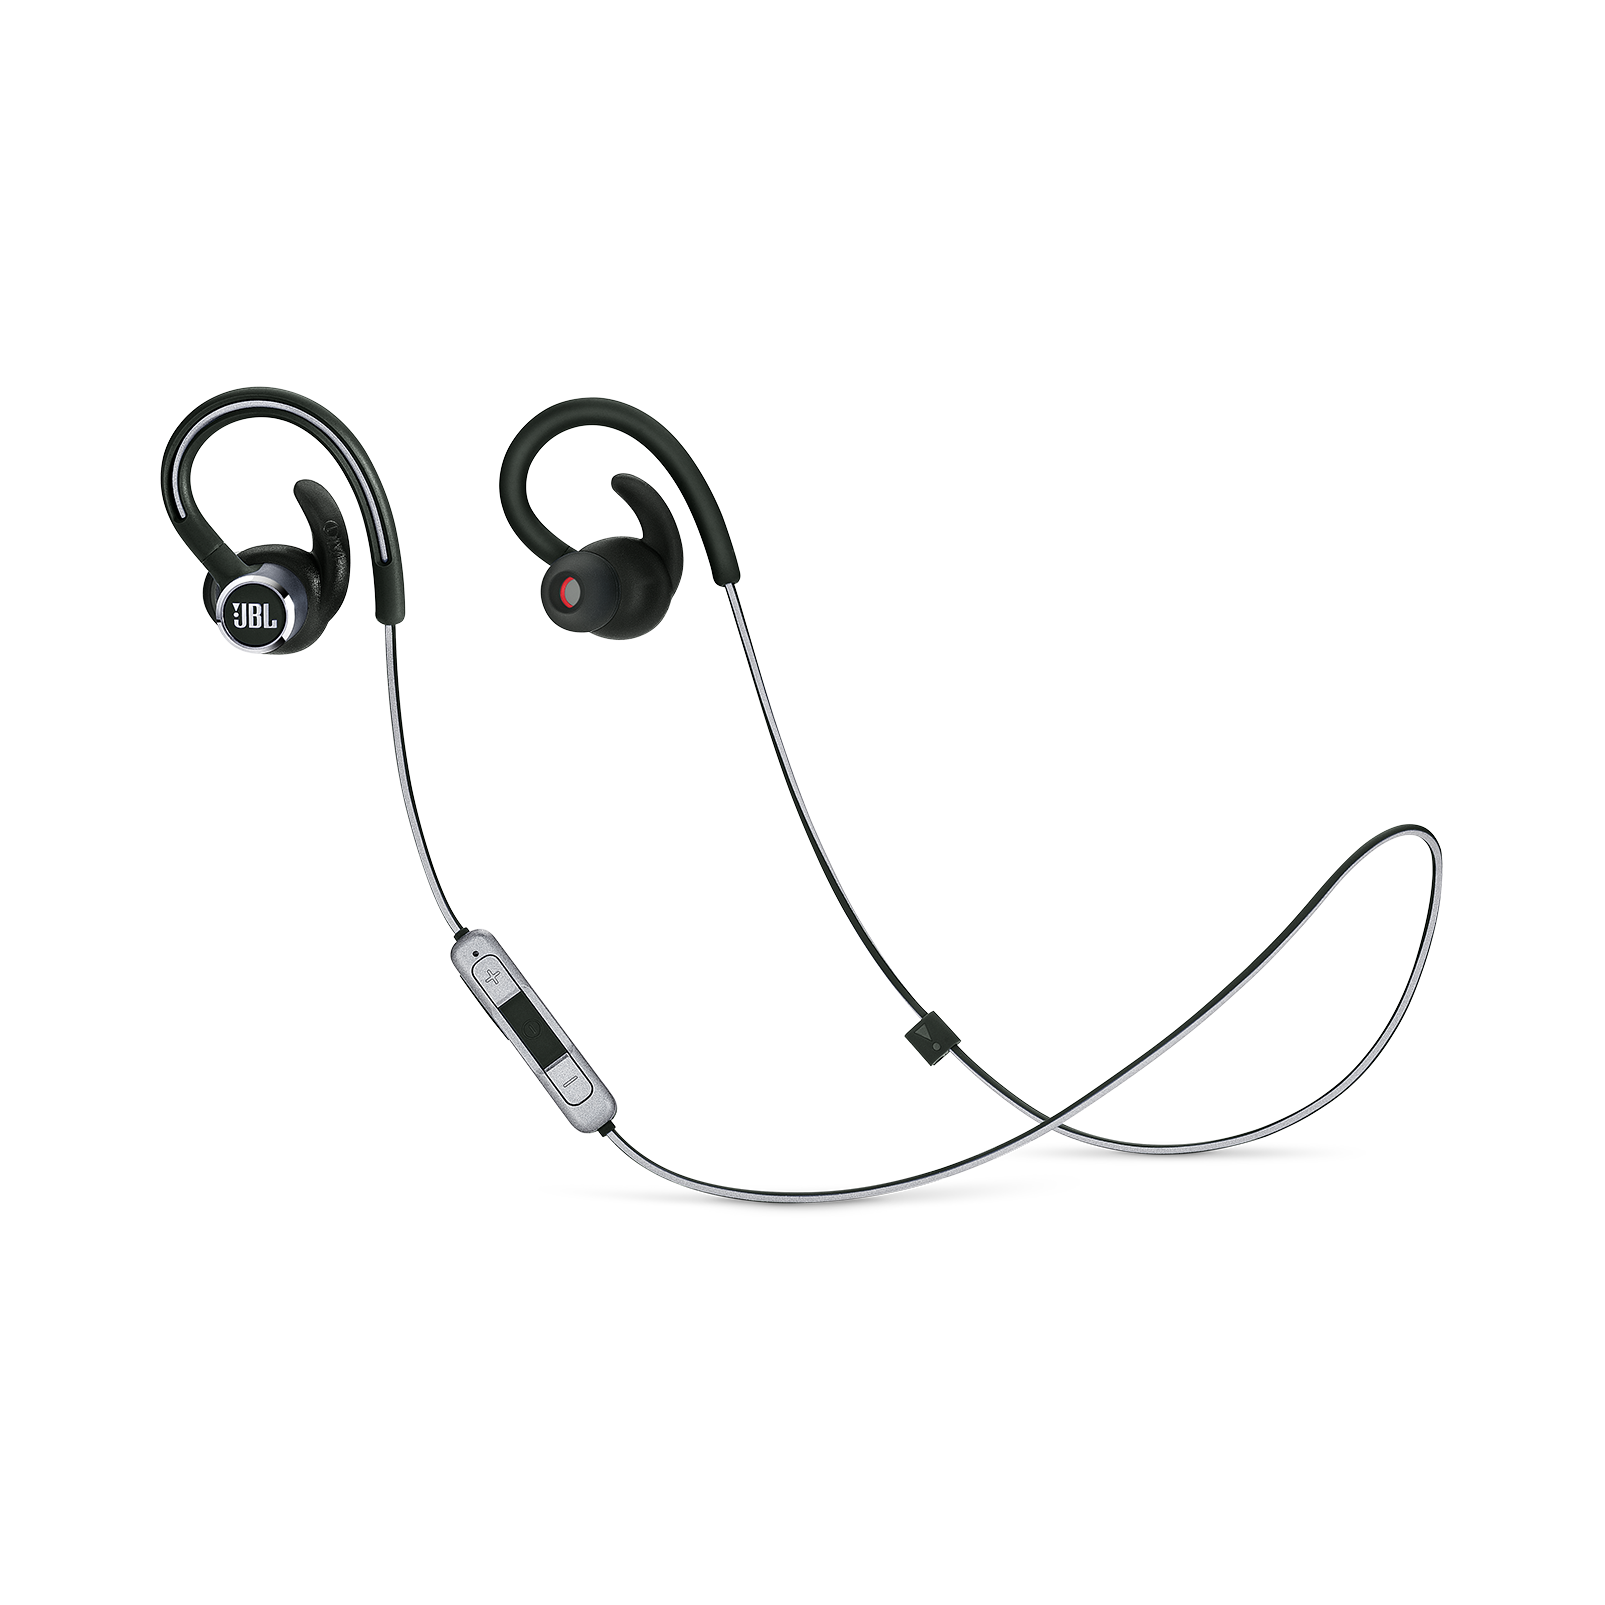 Jbl Reflect Contour 2 Secure Fit Wireless Sport Headphones Wiring Speakers To Headphone Diagram